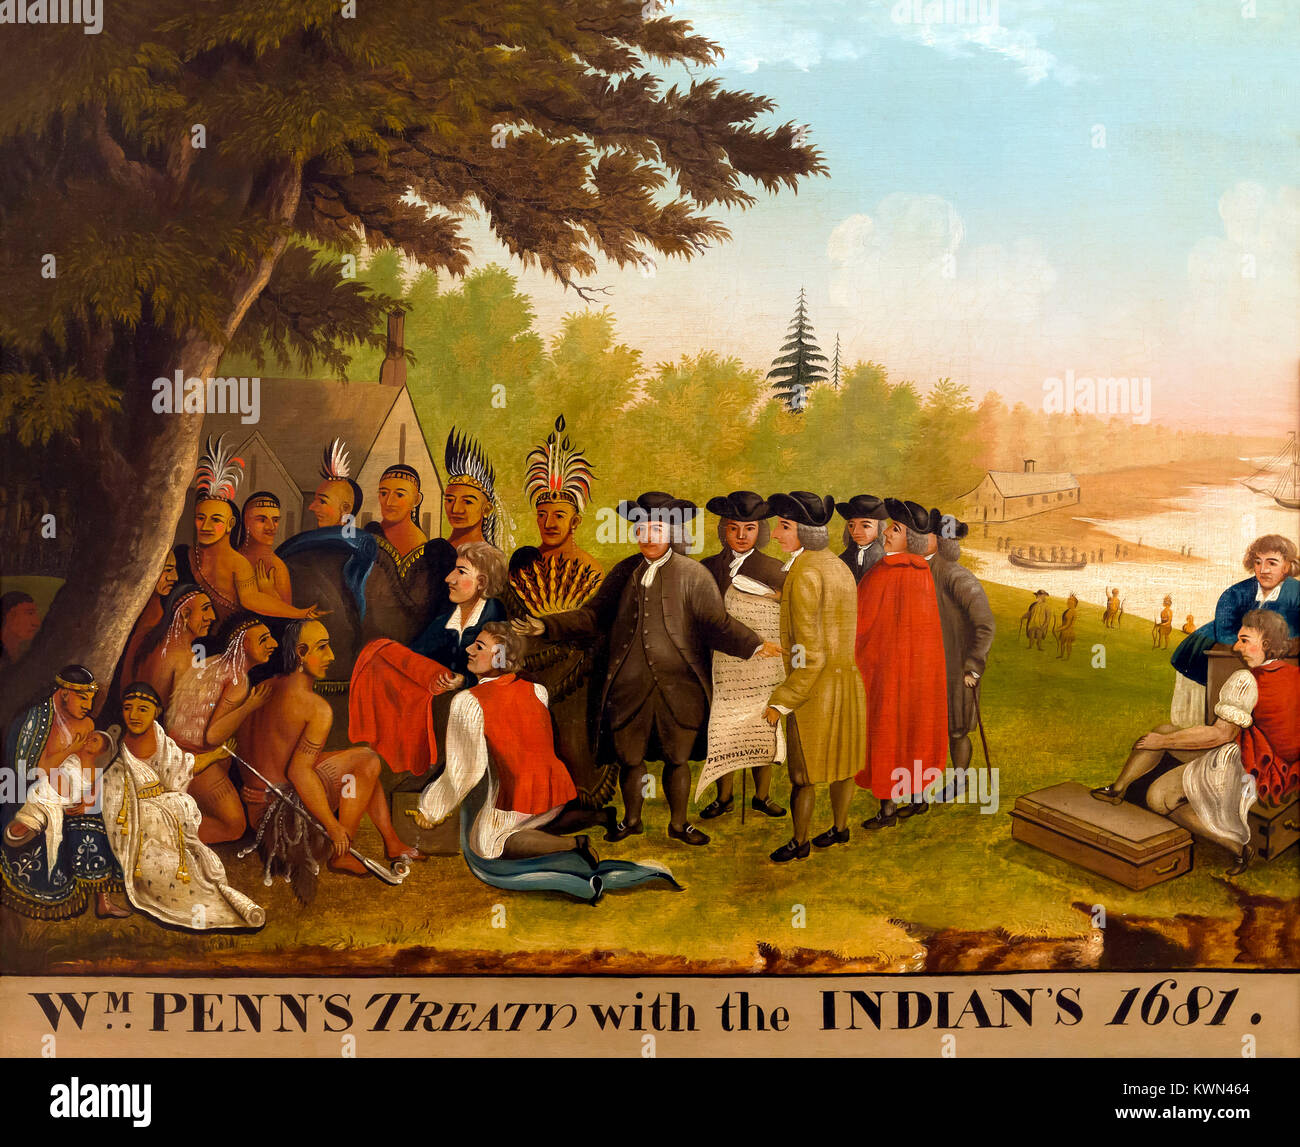 Penn's Treaty, Edward Hicks, 1836, Metropolitan Museum of Art, Manhattan, New York City, USA, North America - Stock Image